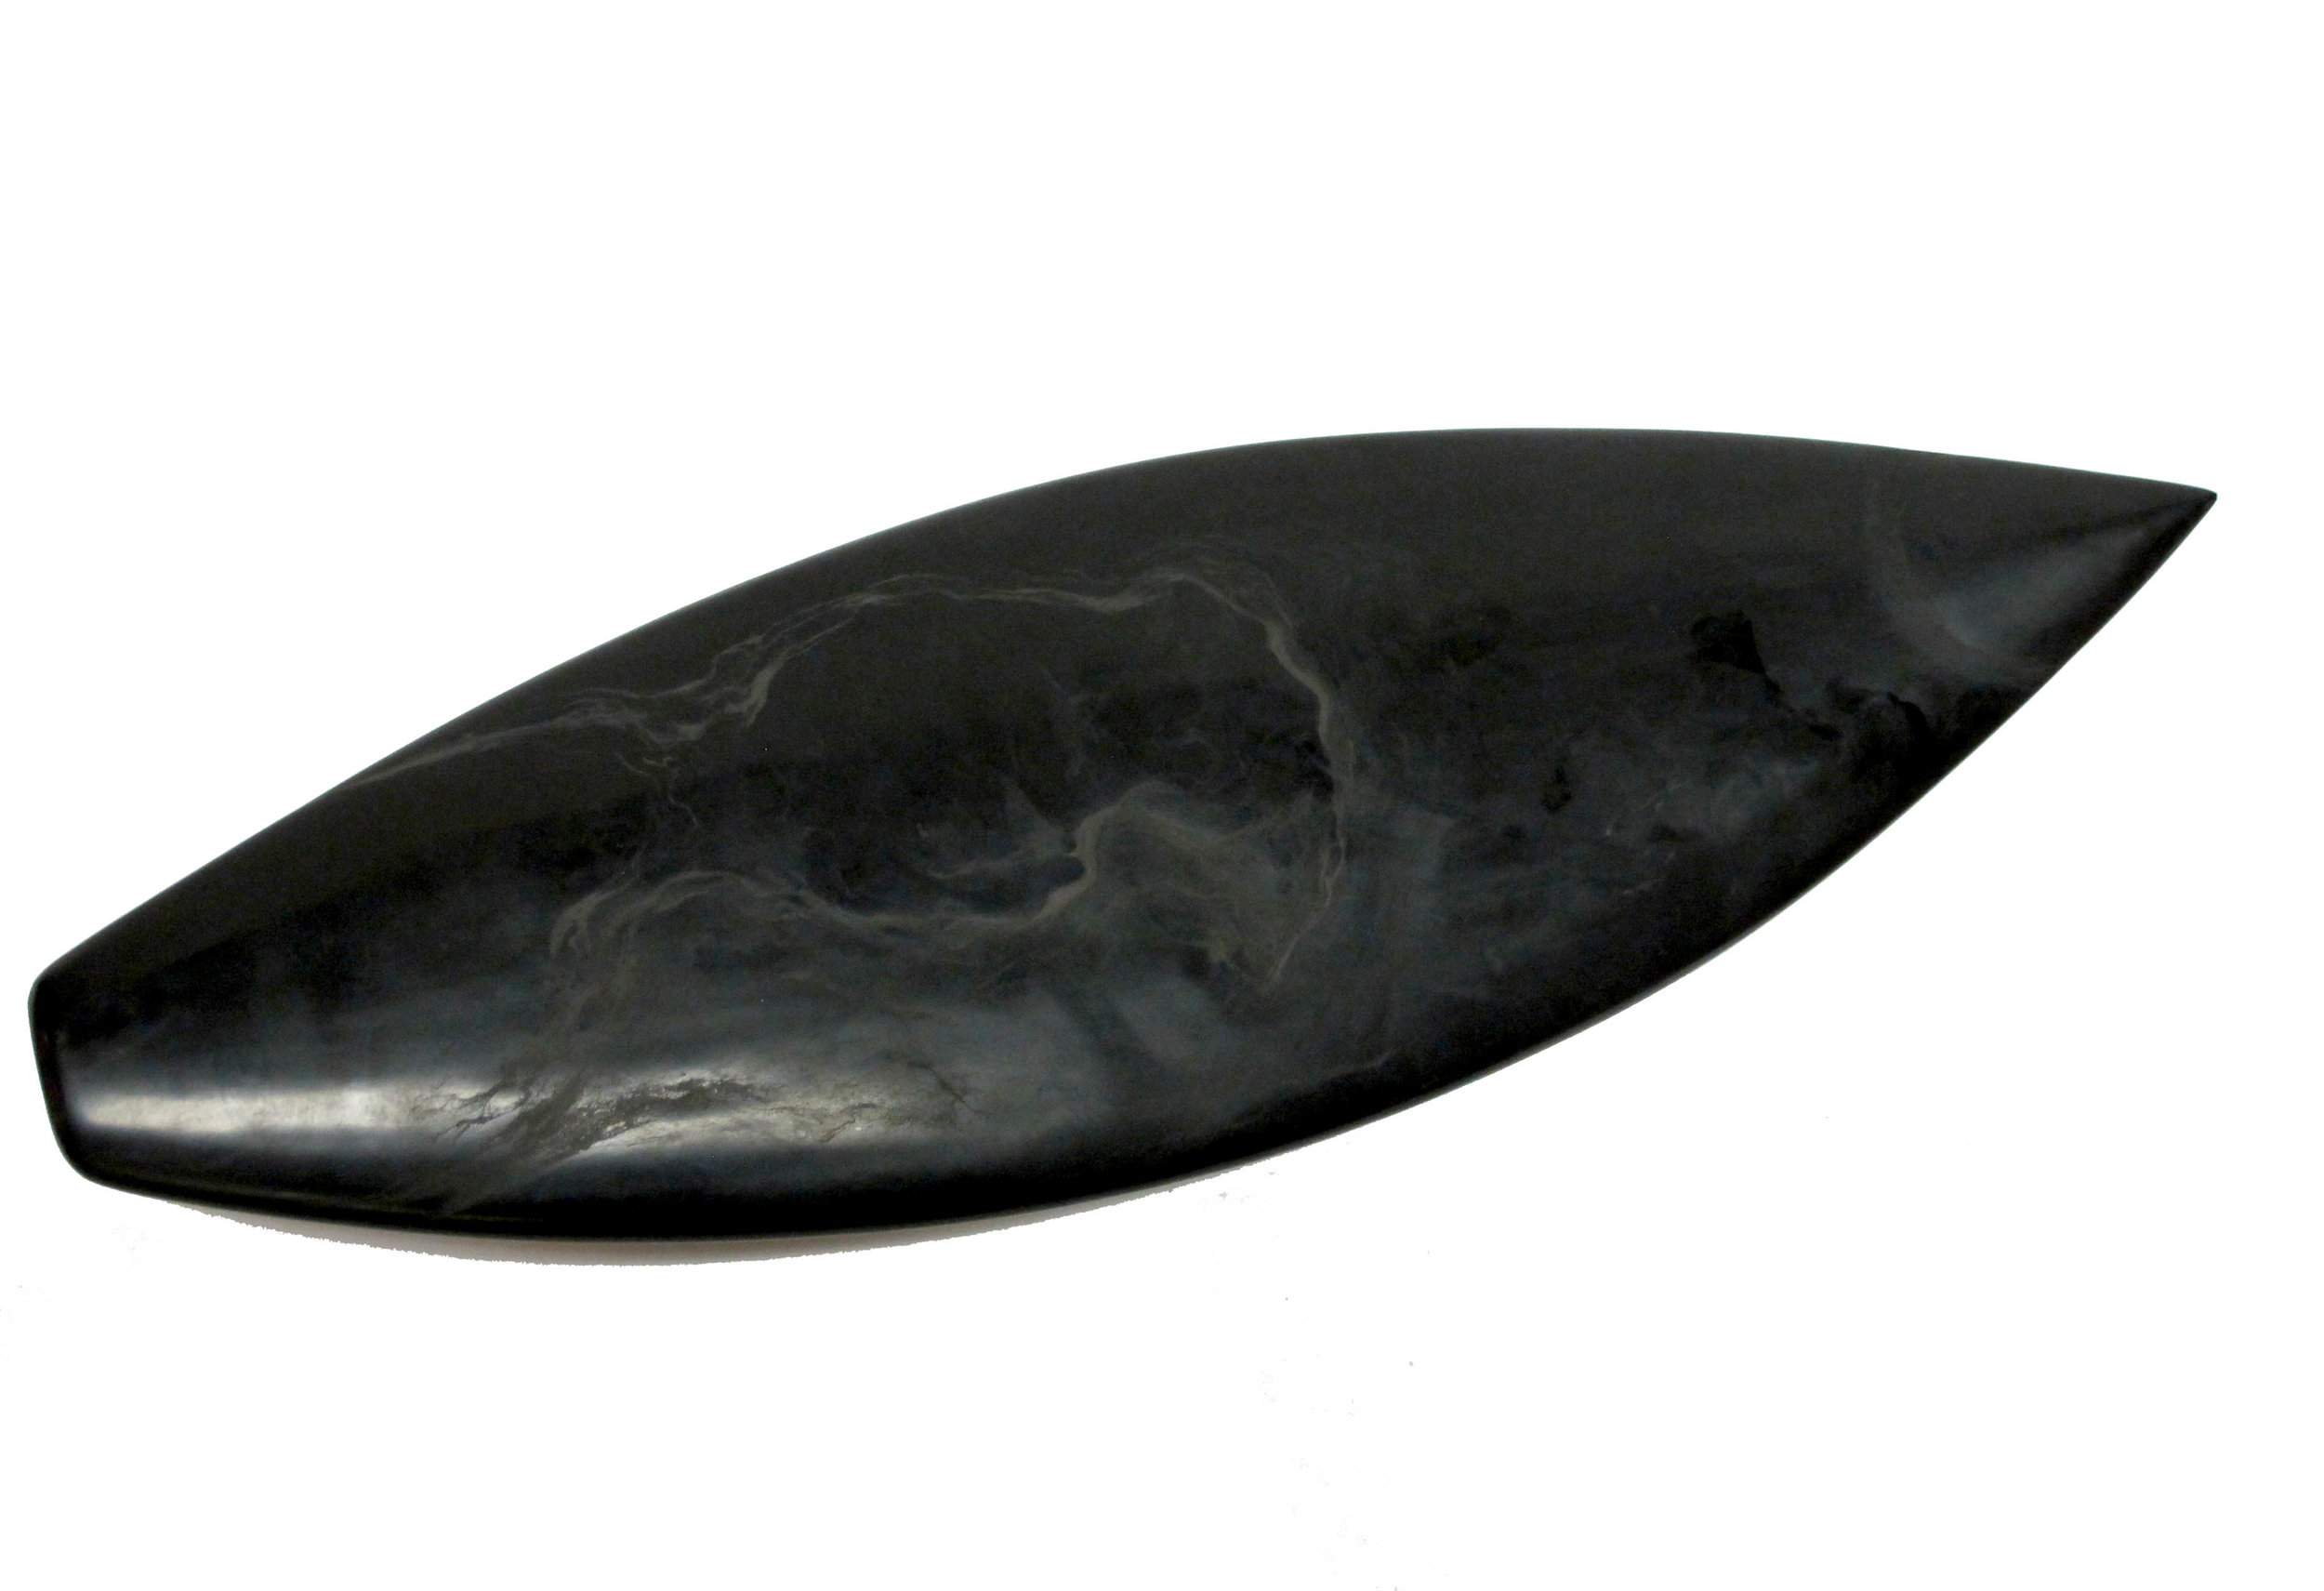 KL_Surfboard Small_black marble.jpg